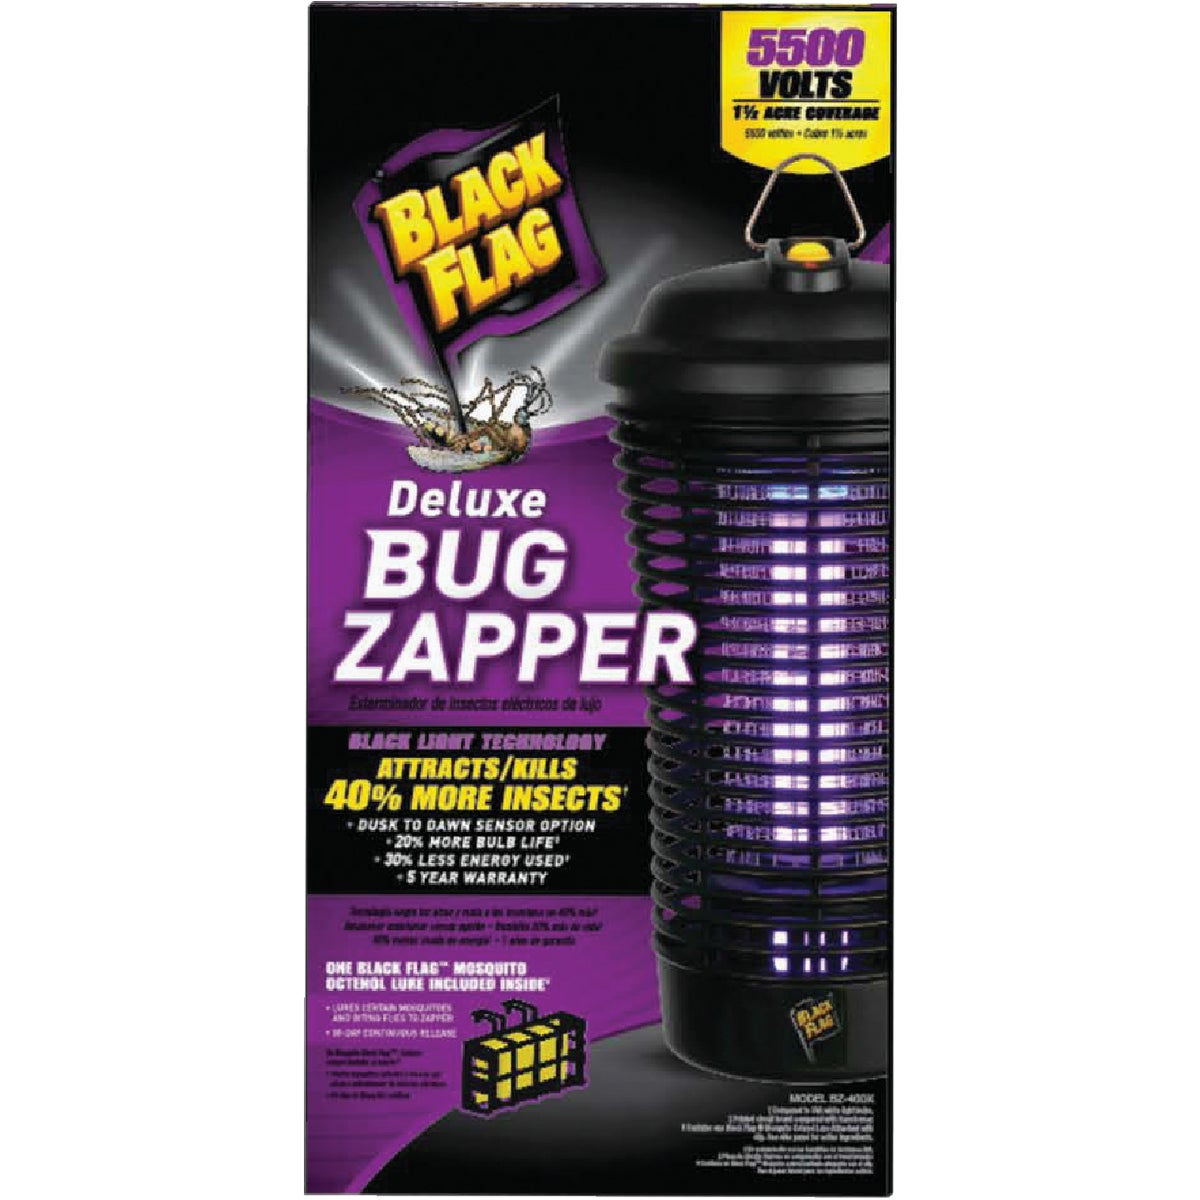 1.5 ACRE ULTRA BUG KILLR - BK310 by Kaz